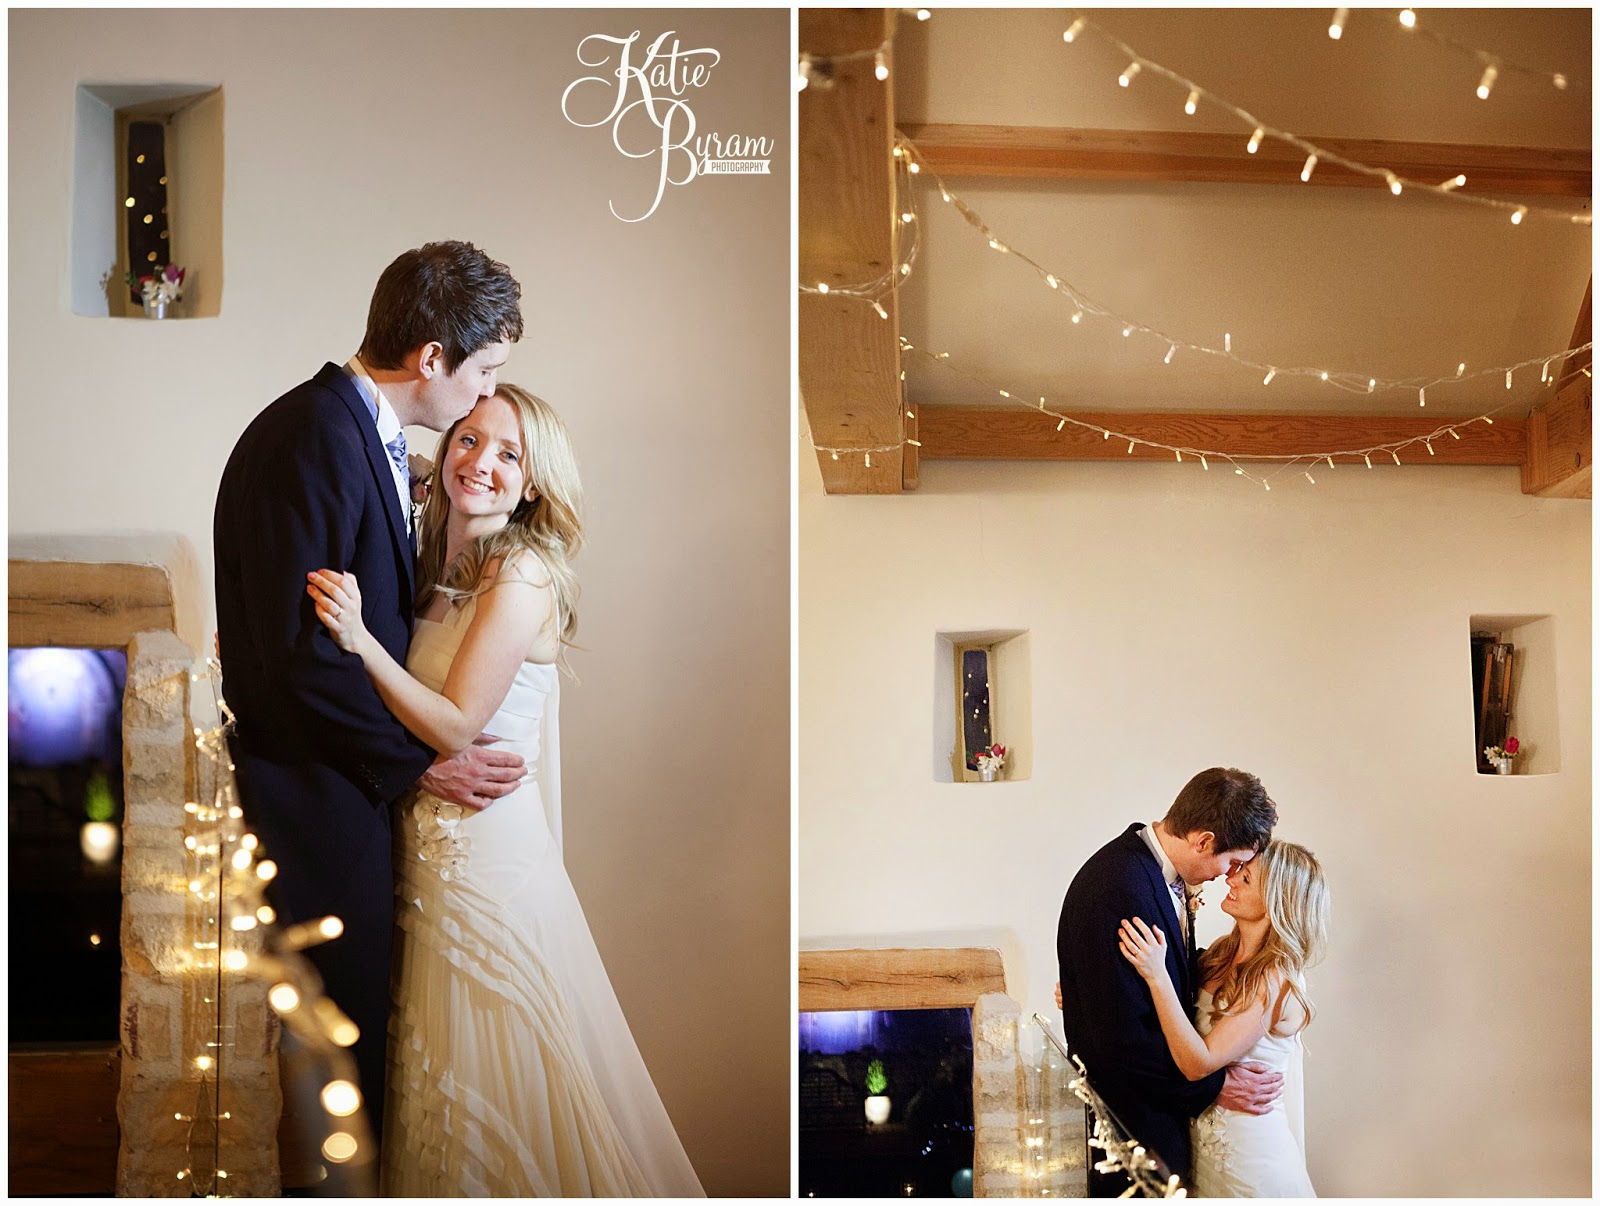 priory cottages wedding, priory cottages, priory cottages wetherby, yorkshire wedding photographer, wedding venue yorkshire, jenny packham, katie byram photography, paperwhite flowers, spring wedding, rustic wedding, marquee wedding, cottage wedding, countryside wedding